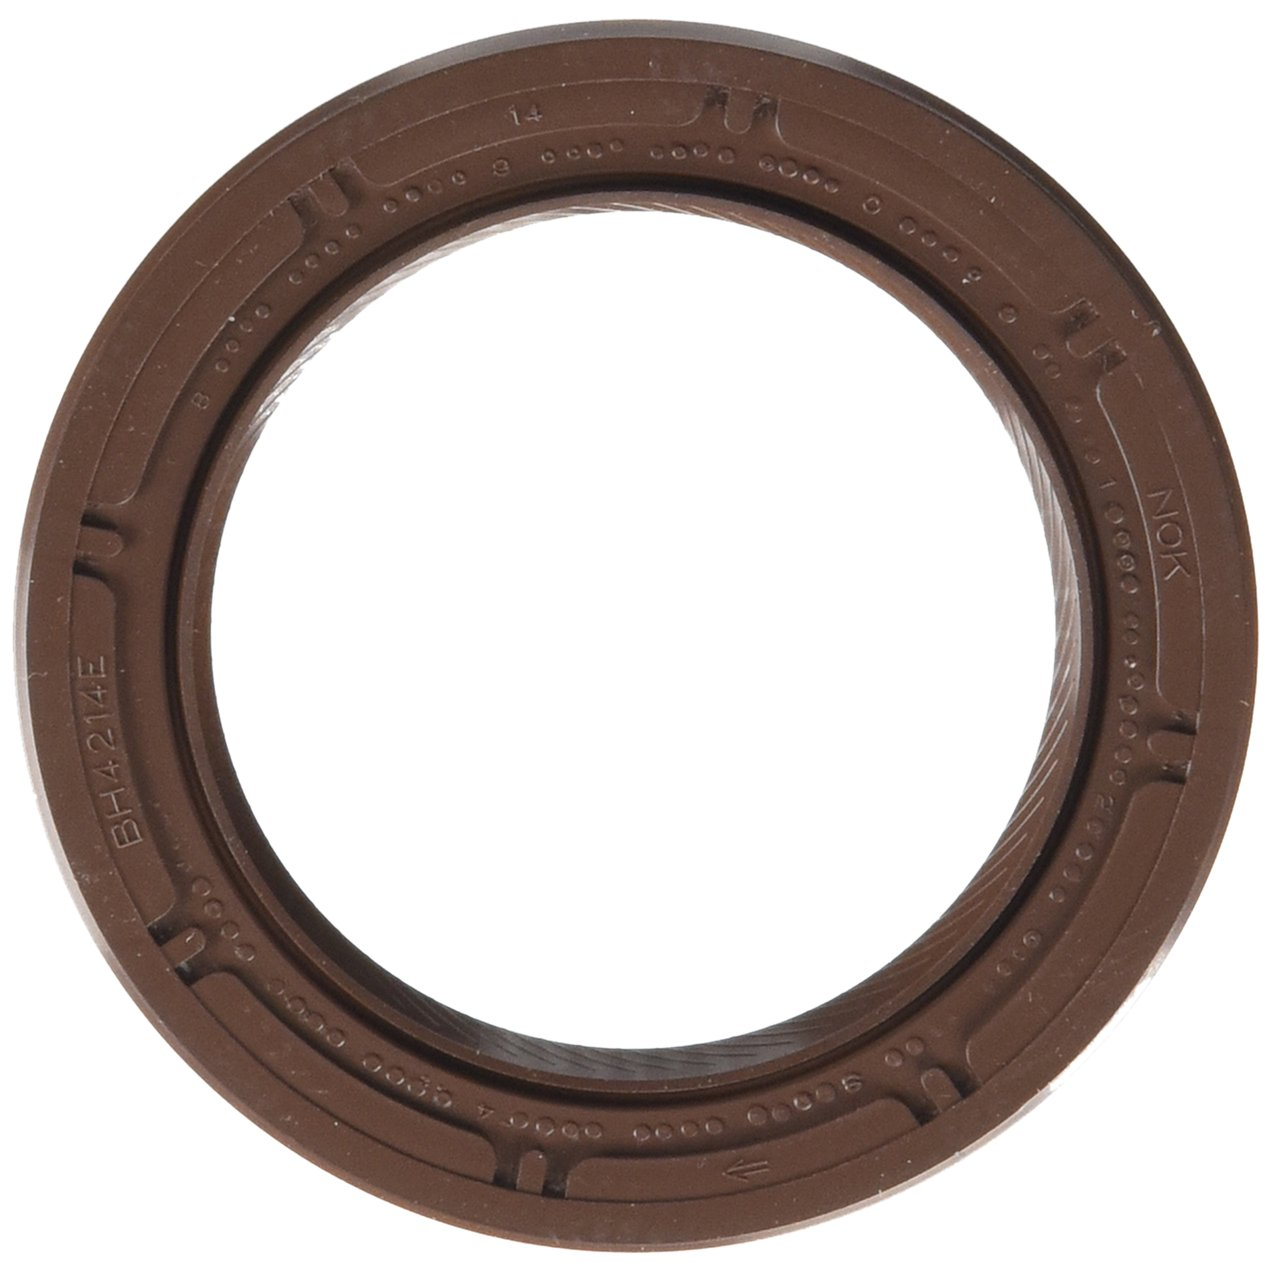 Genuine Toyota 90311-48014 Type-T Crankshaft Oil Seal